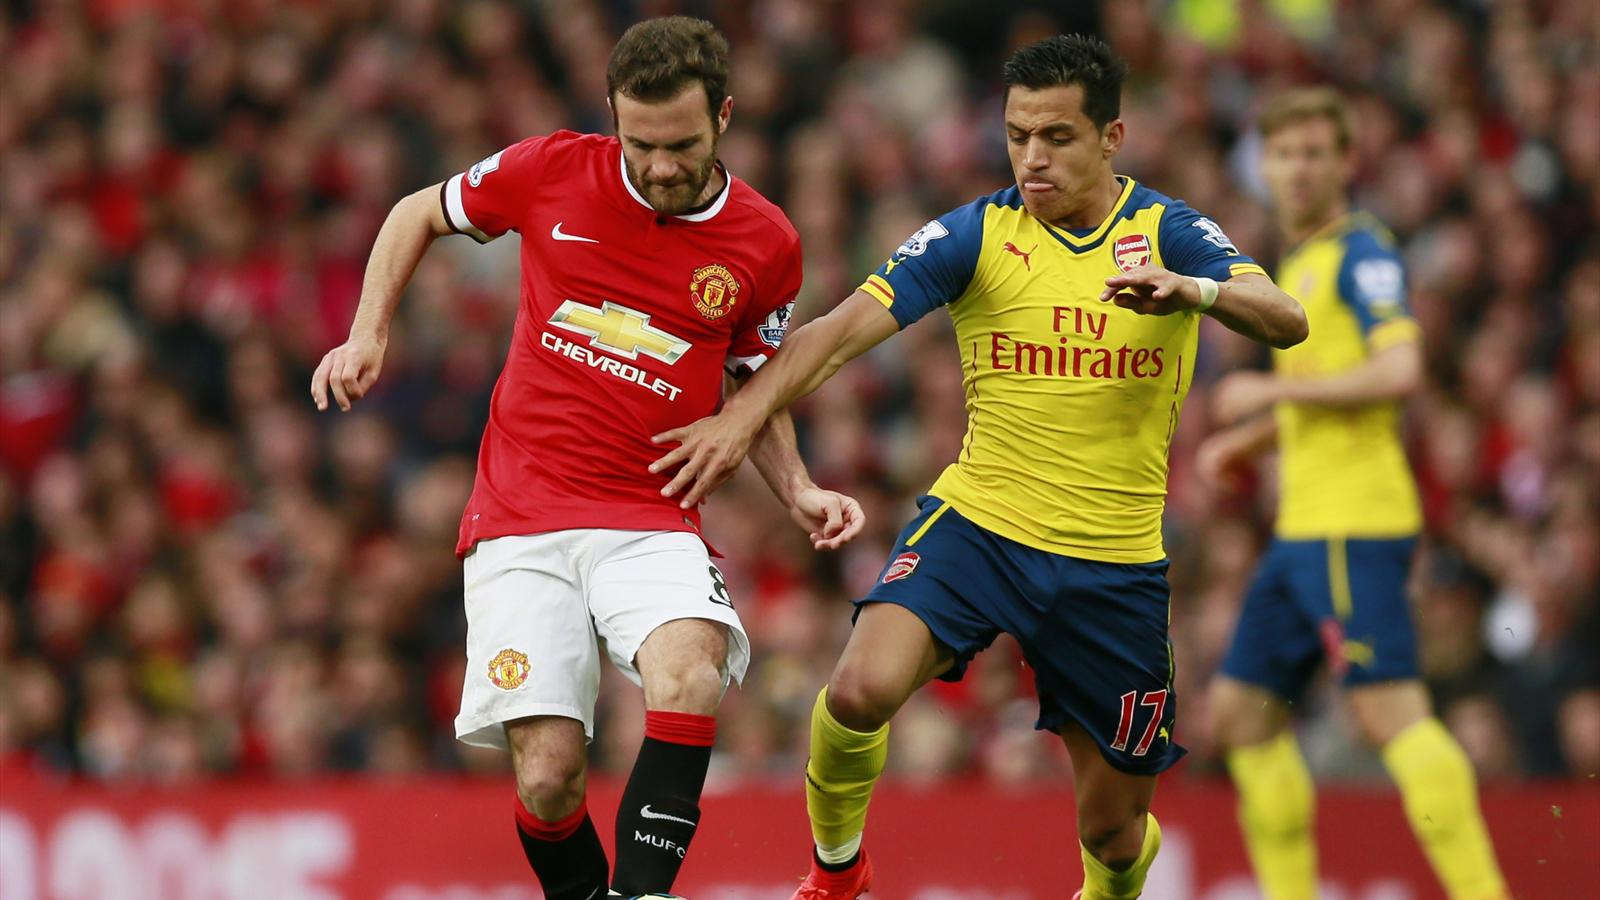 Arsenal's Alexis Sanchez in action with Manchester United's Juan Mata